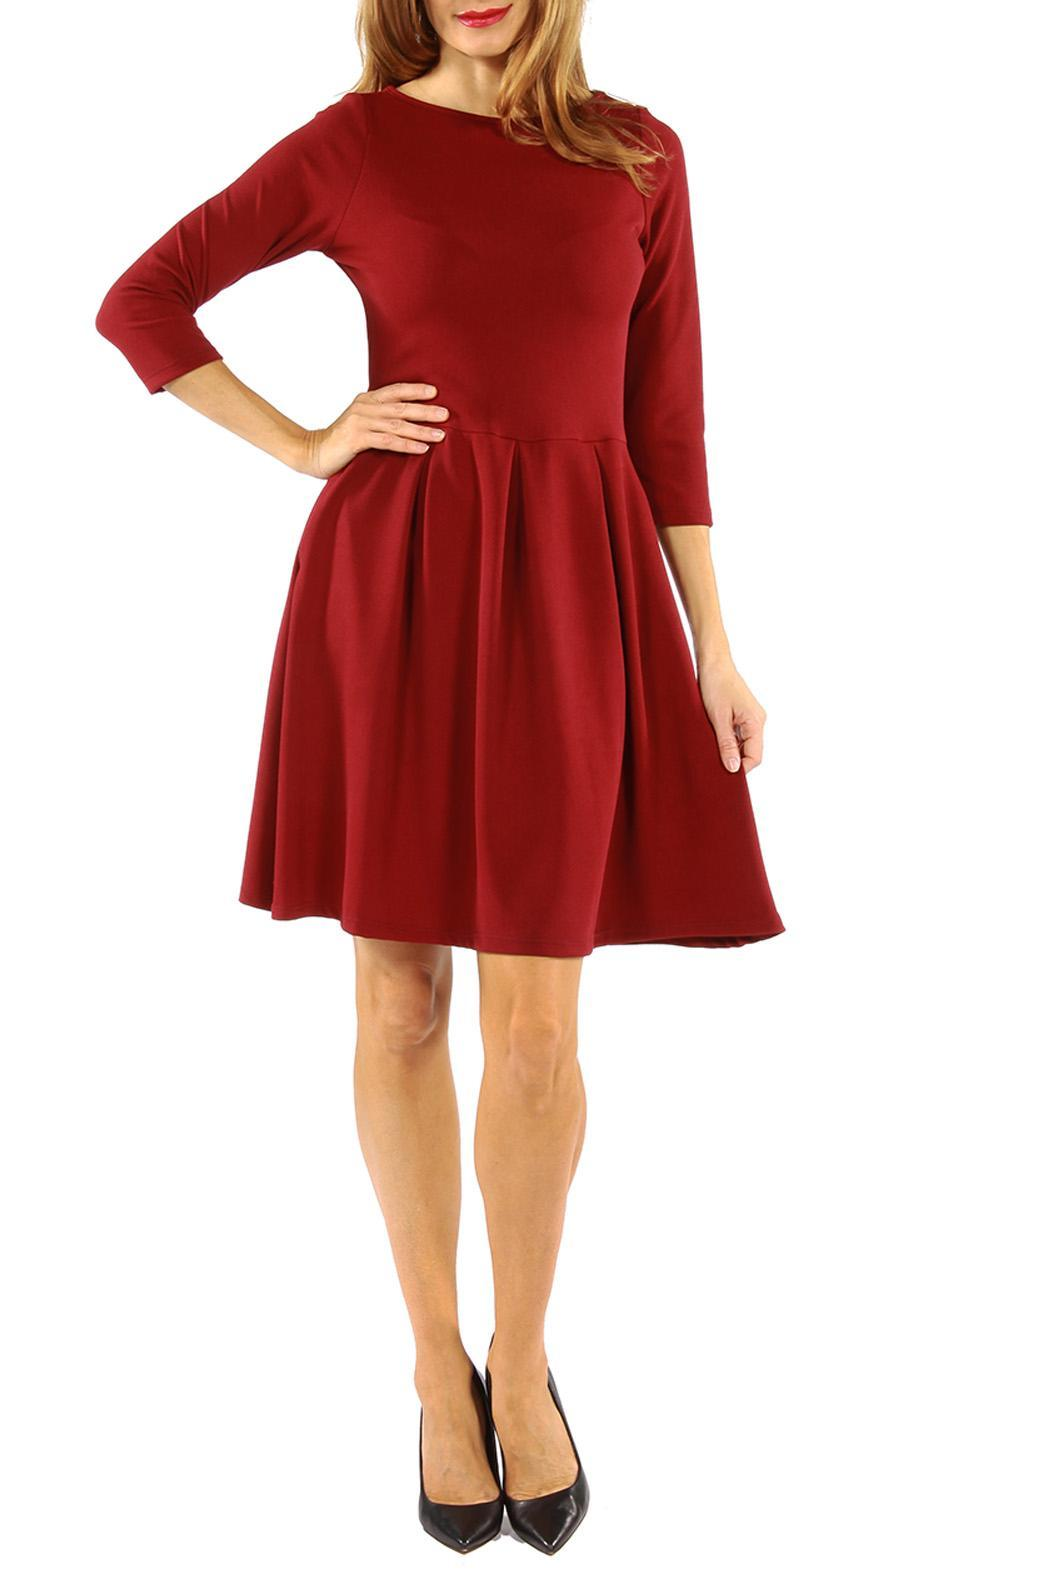 Find little red cocktail dress at ShopStyle. Shop the latest collection of little red cocktail dress from the most popular stores - all in one place.